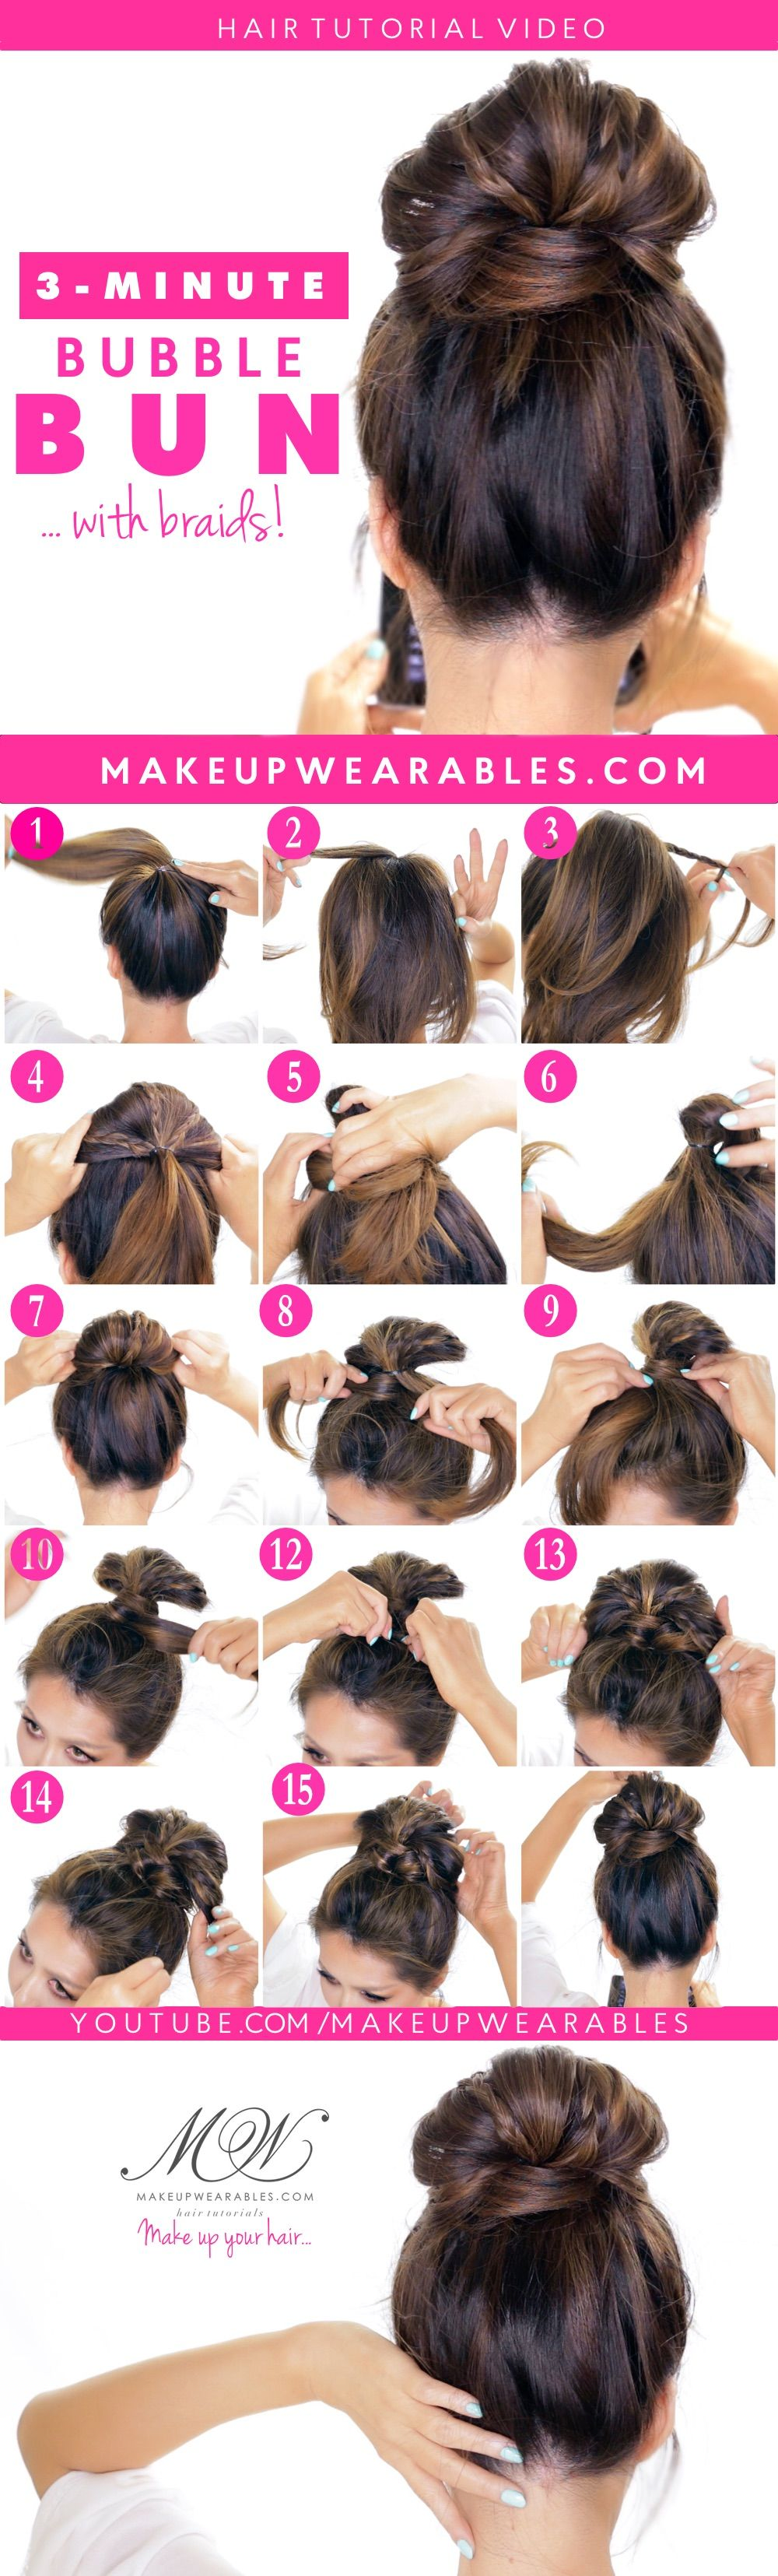 3 Minute Bubble Messy Bun With Braids Easy Lazy Hairstyles Hair Styles Long Hair Styles Hairstyle